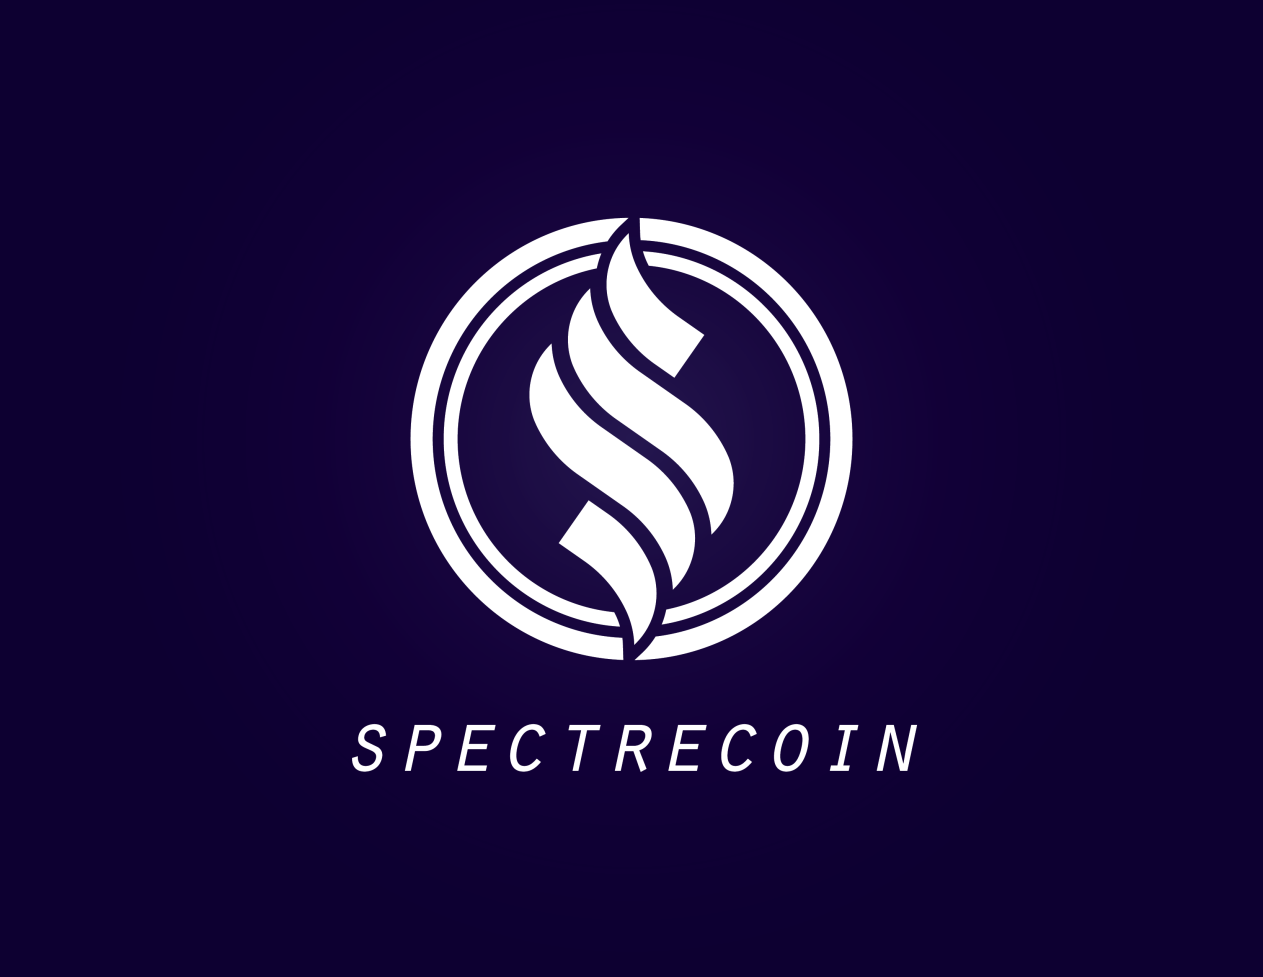 Why Spectrecoin (Xspec)?